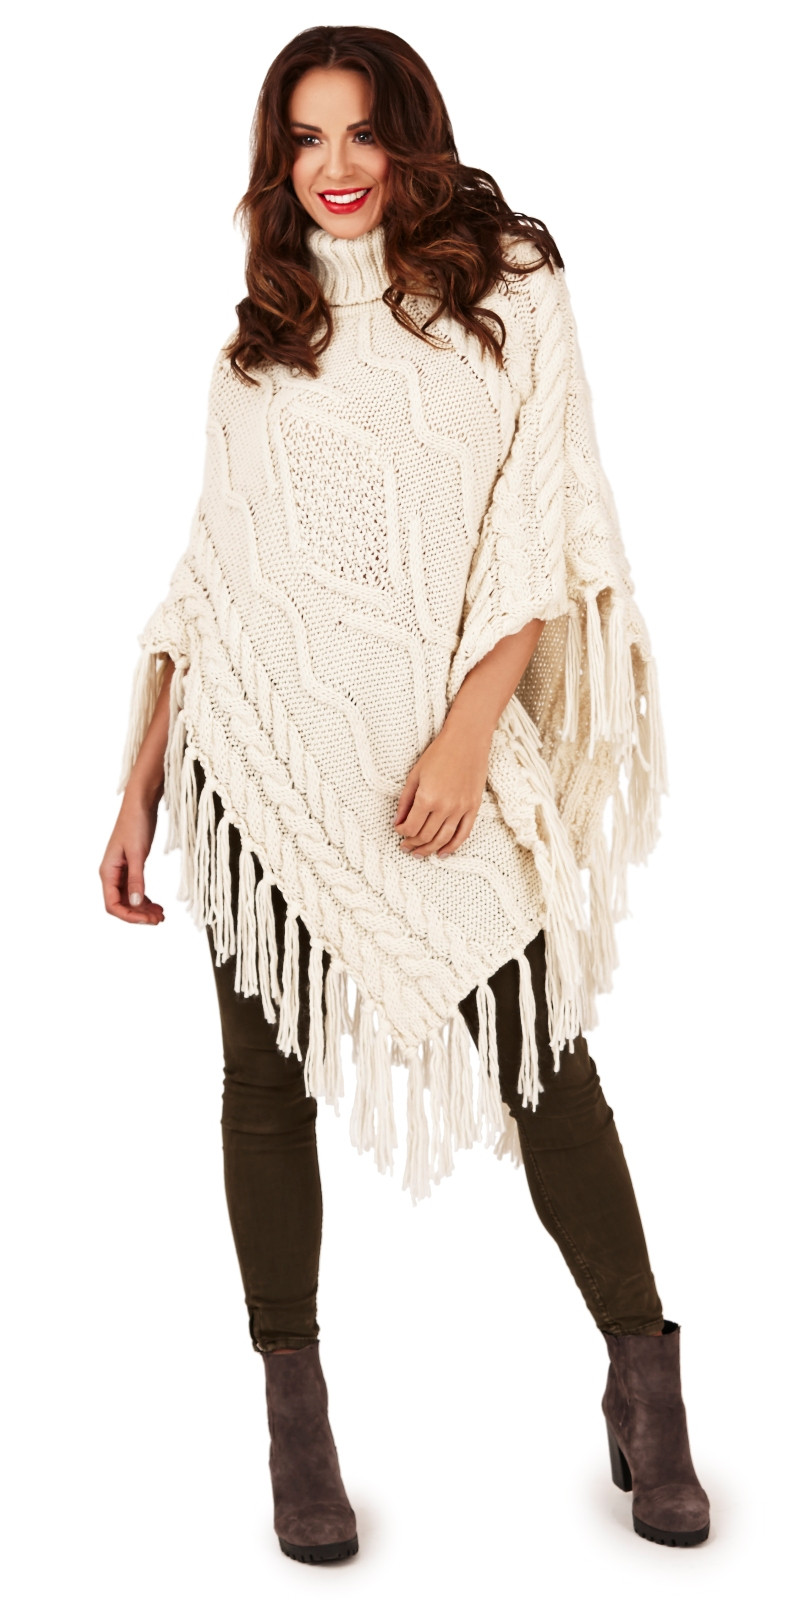 Best Of Womens Warm Winter Luxury Poncho Wrap Knitted Shawl Throw Knitted Shawl Wrap Of Superb 49 Images Knitted Shawl Wrap